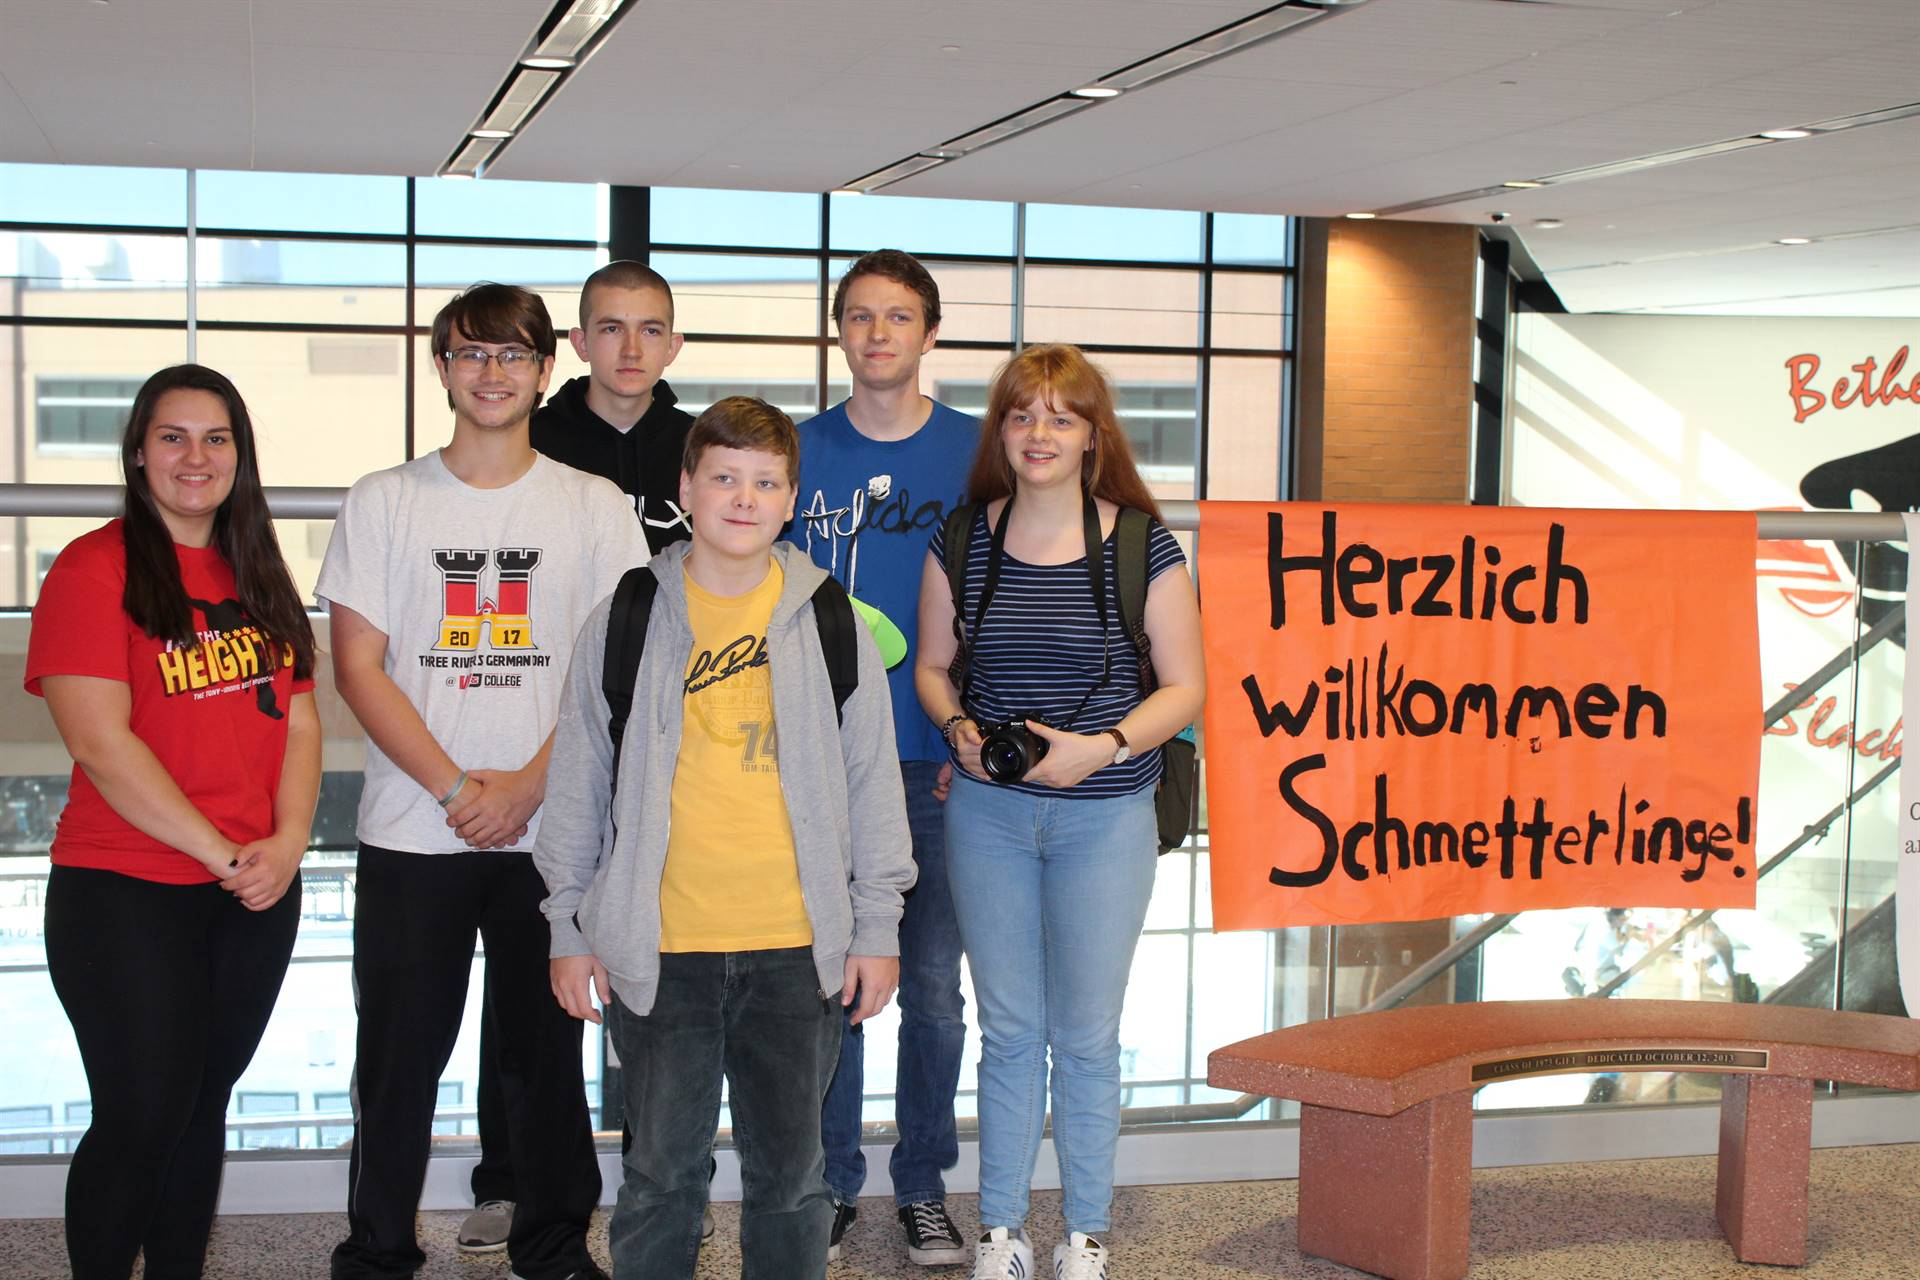 Students stand beside the welcome sign